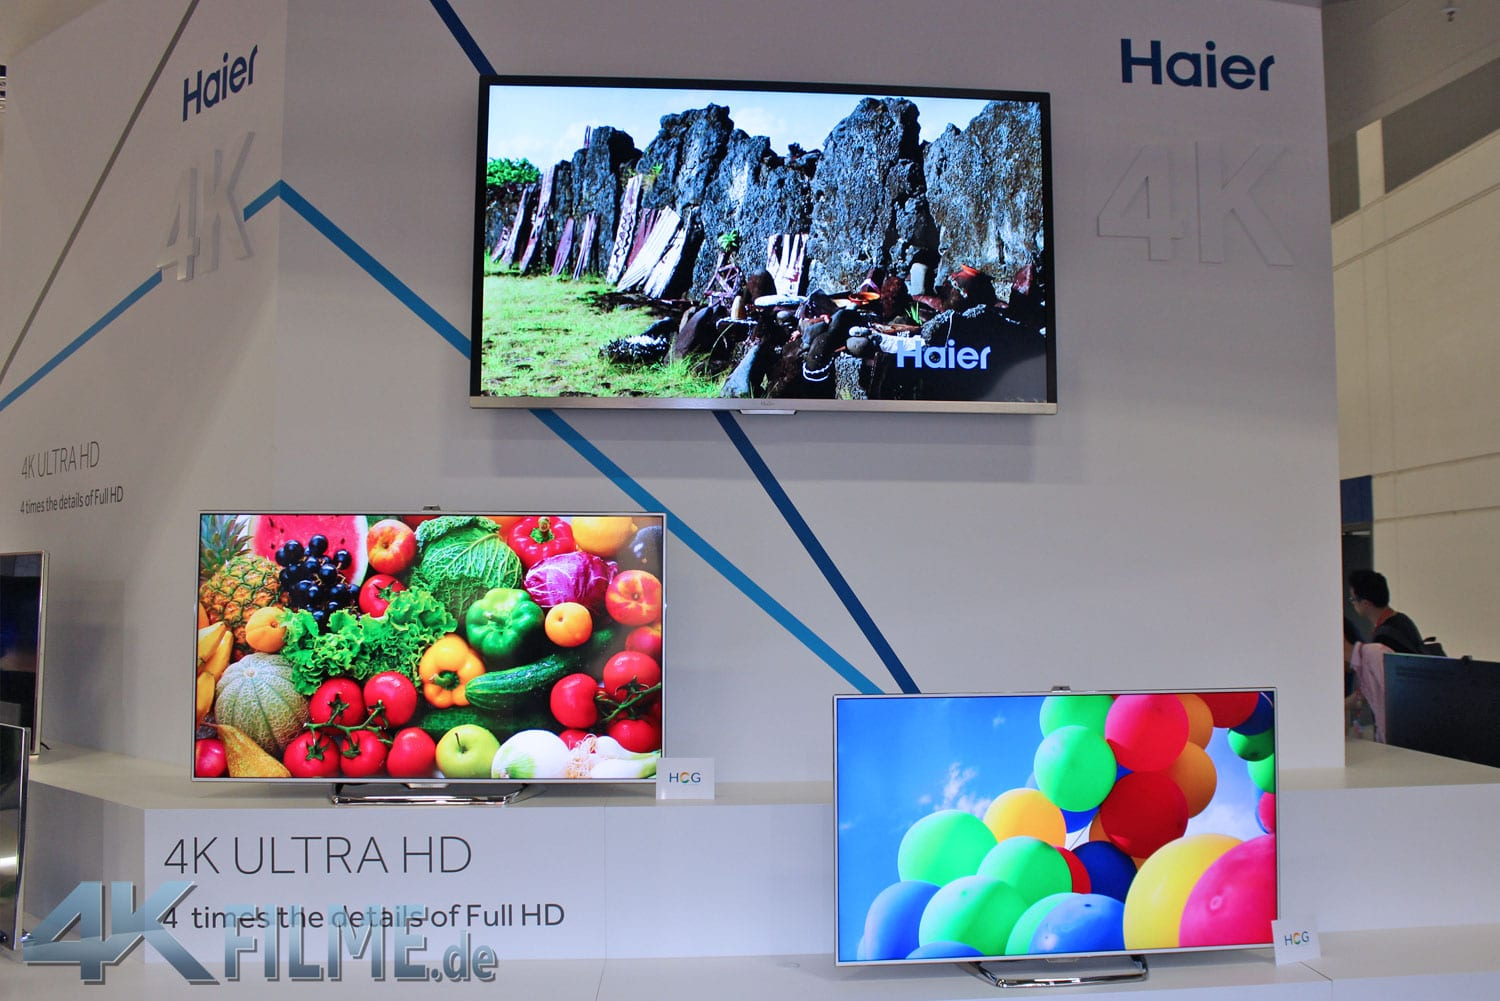 Haier 4K Ultra HD TVs mit High Color Gamut